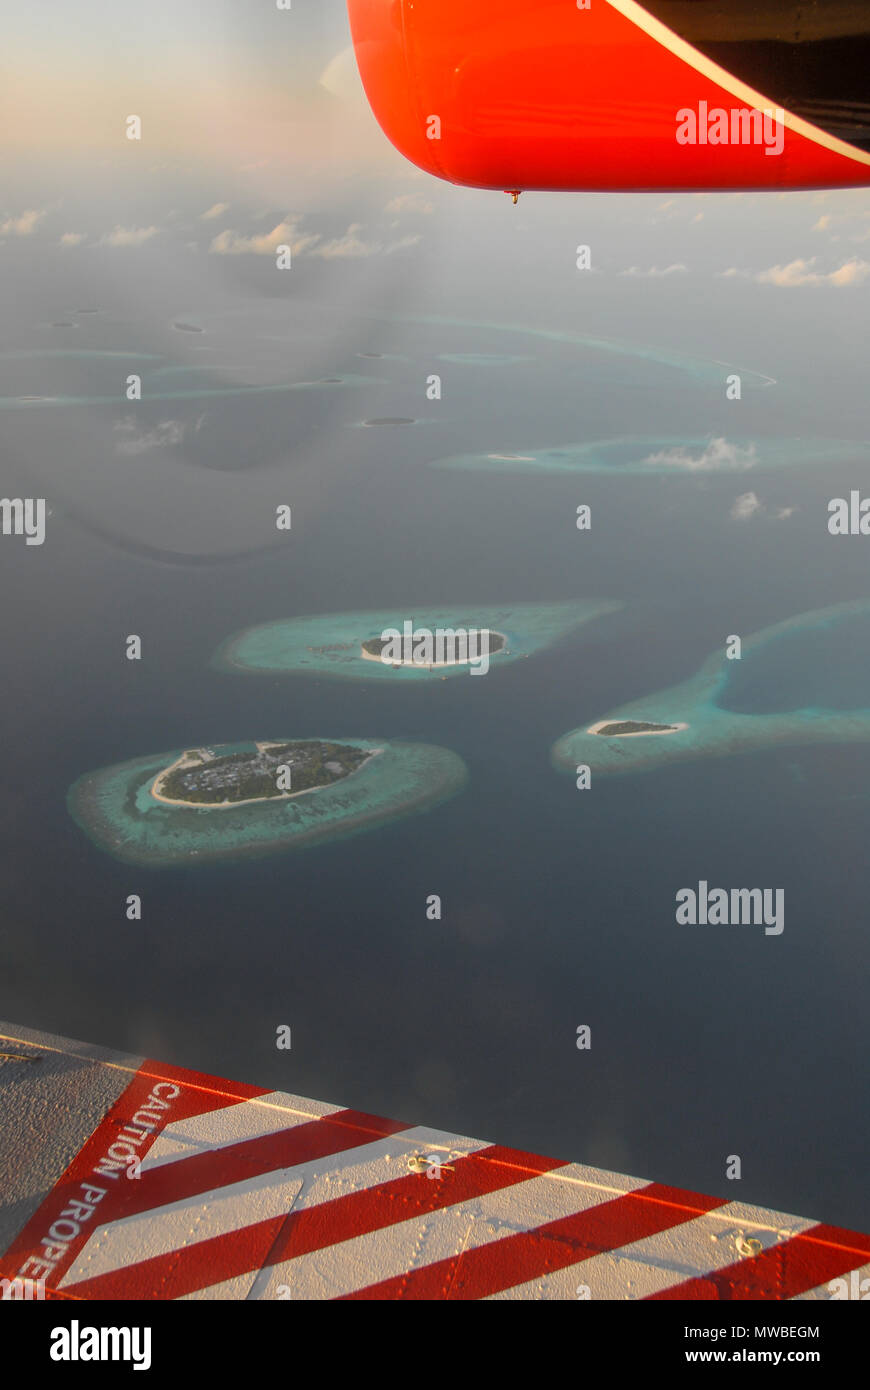 View of Maldives seaplaned of the Maldivian Air Taxi airline from Male, Aerial airborne view of islands and atolls within the Maldives, Indian Ocean.  - Stock Image